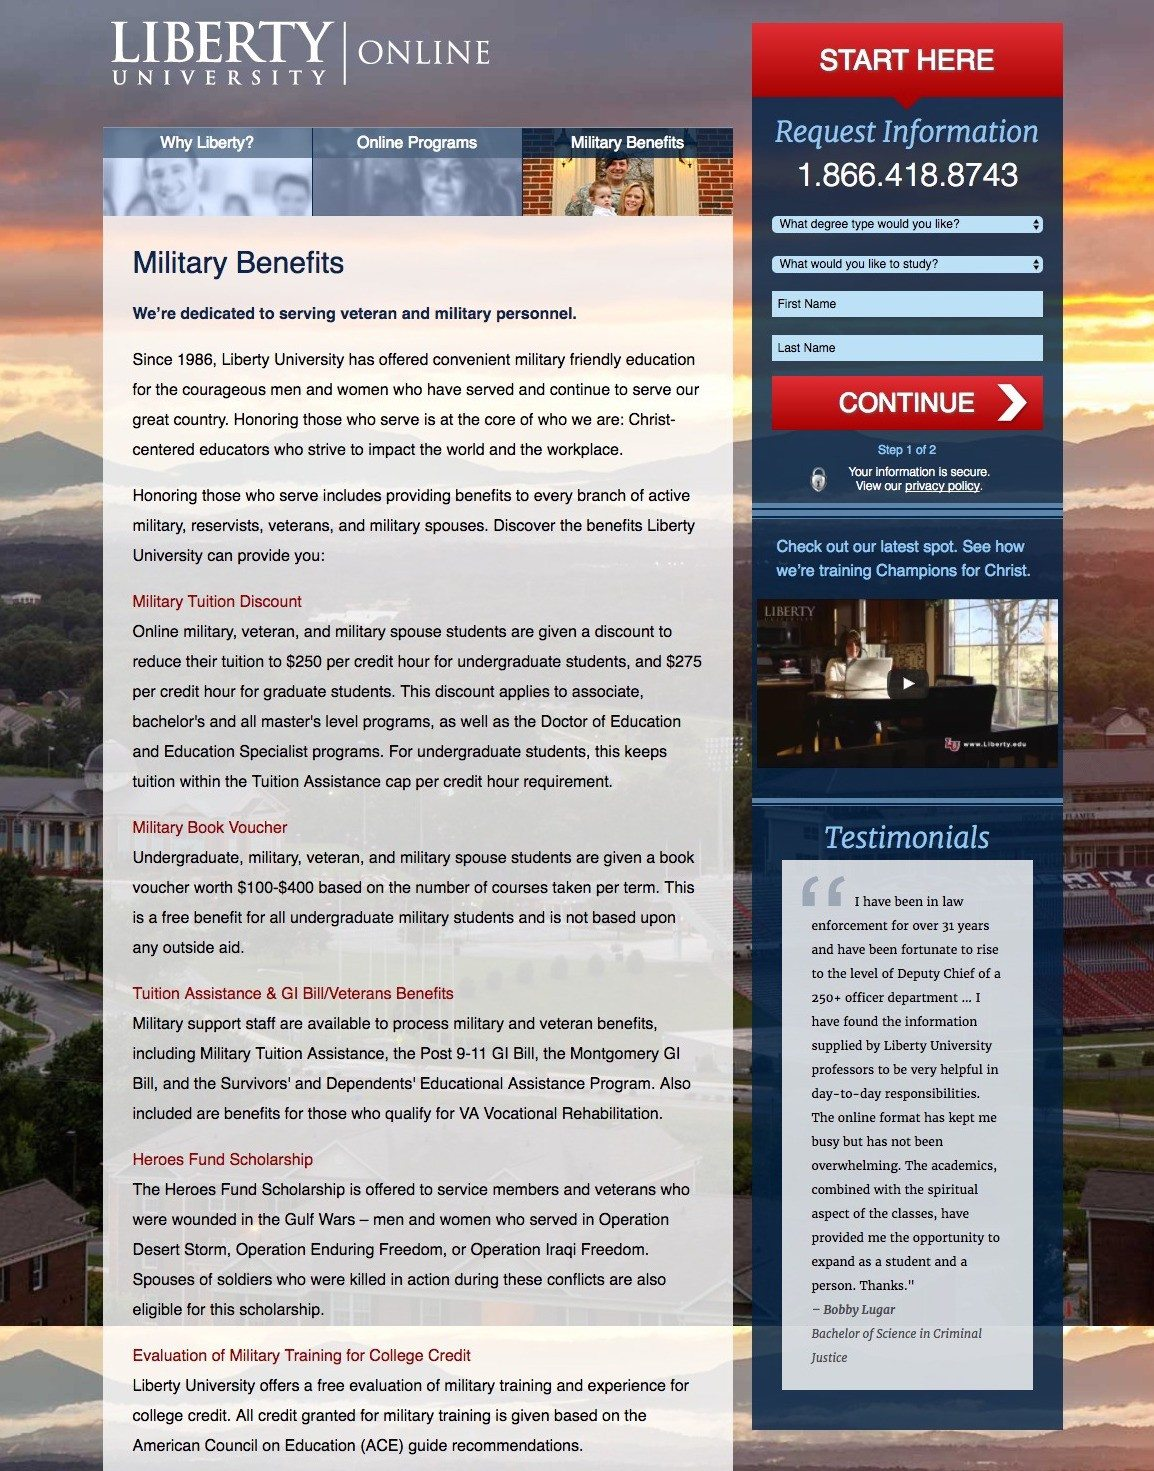 This picture shows marketers how Liberty University uses an education landing page to generate new leads and student sign ups.